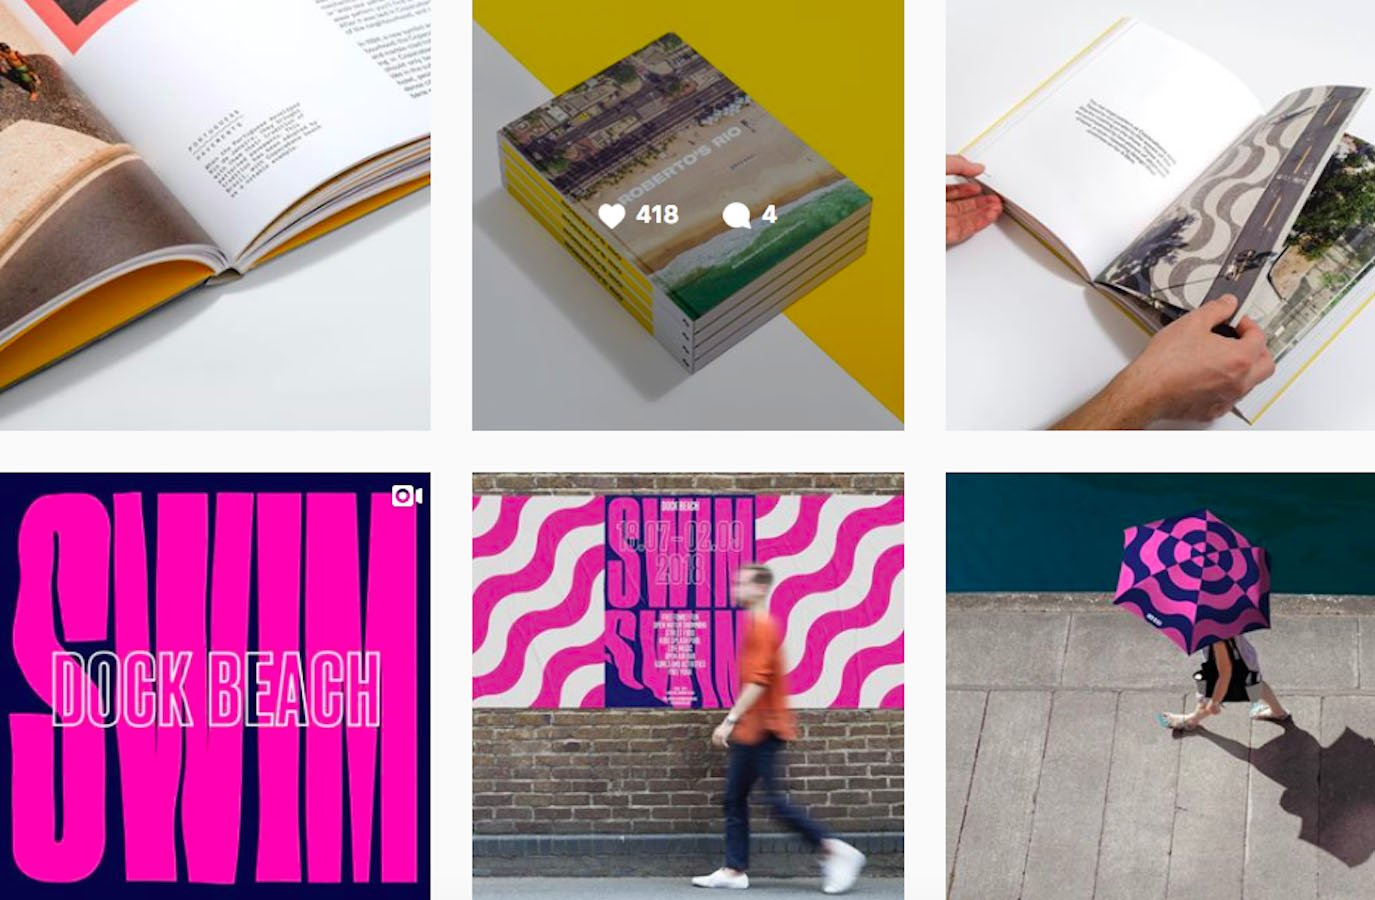 Web Design Inspiration: 110+ Accounts On Instagram and 10+ Best UX & Web Design Books in 2020 - dnco